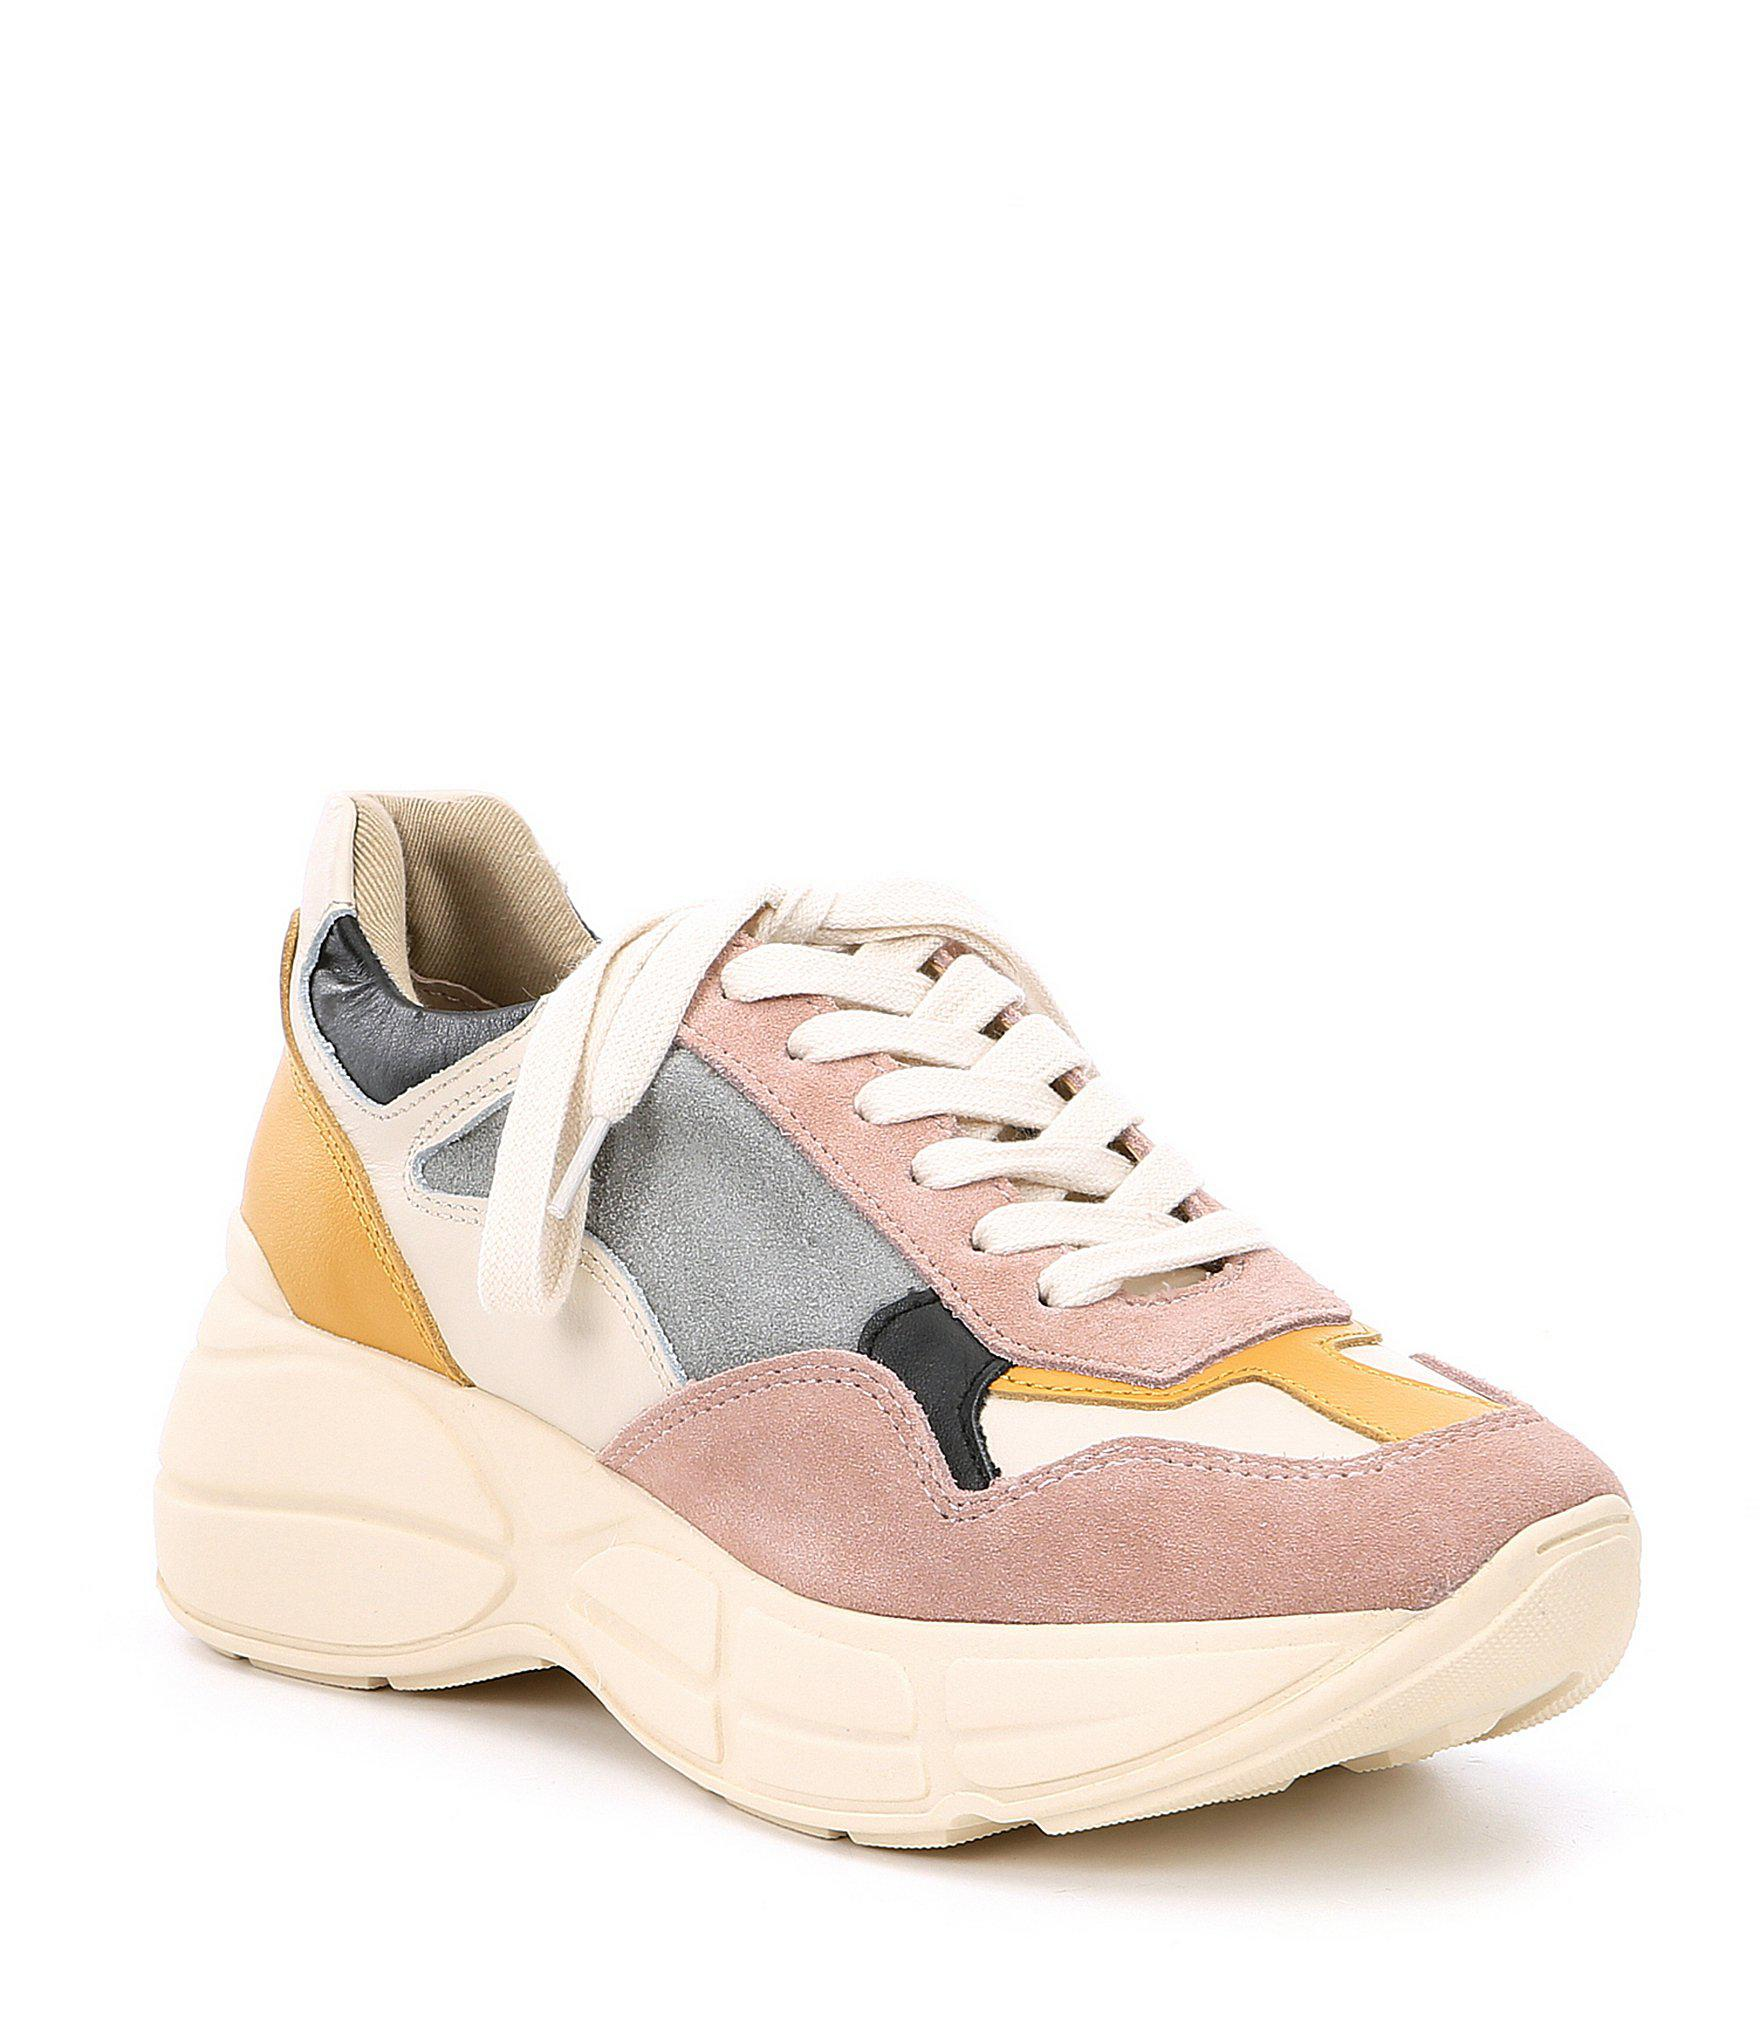 9bbc93c0c29 Lyst - Steve Madden Memory Leather Color Block Sneakers in Pink ...